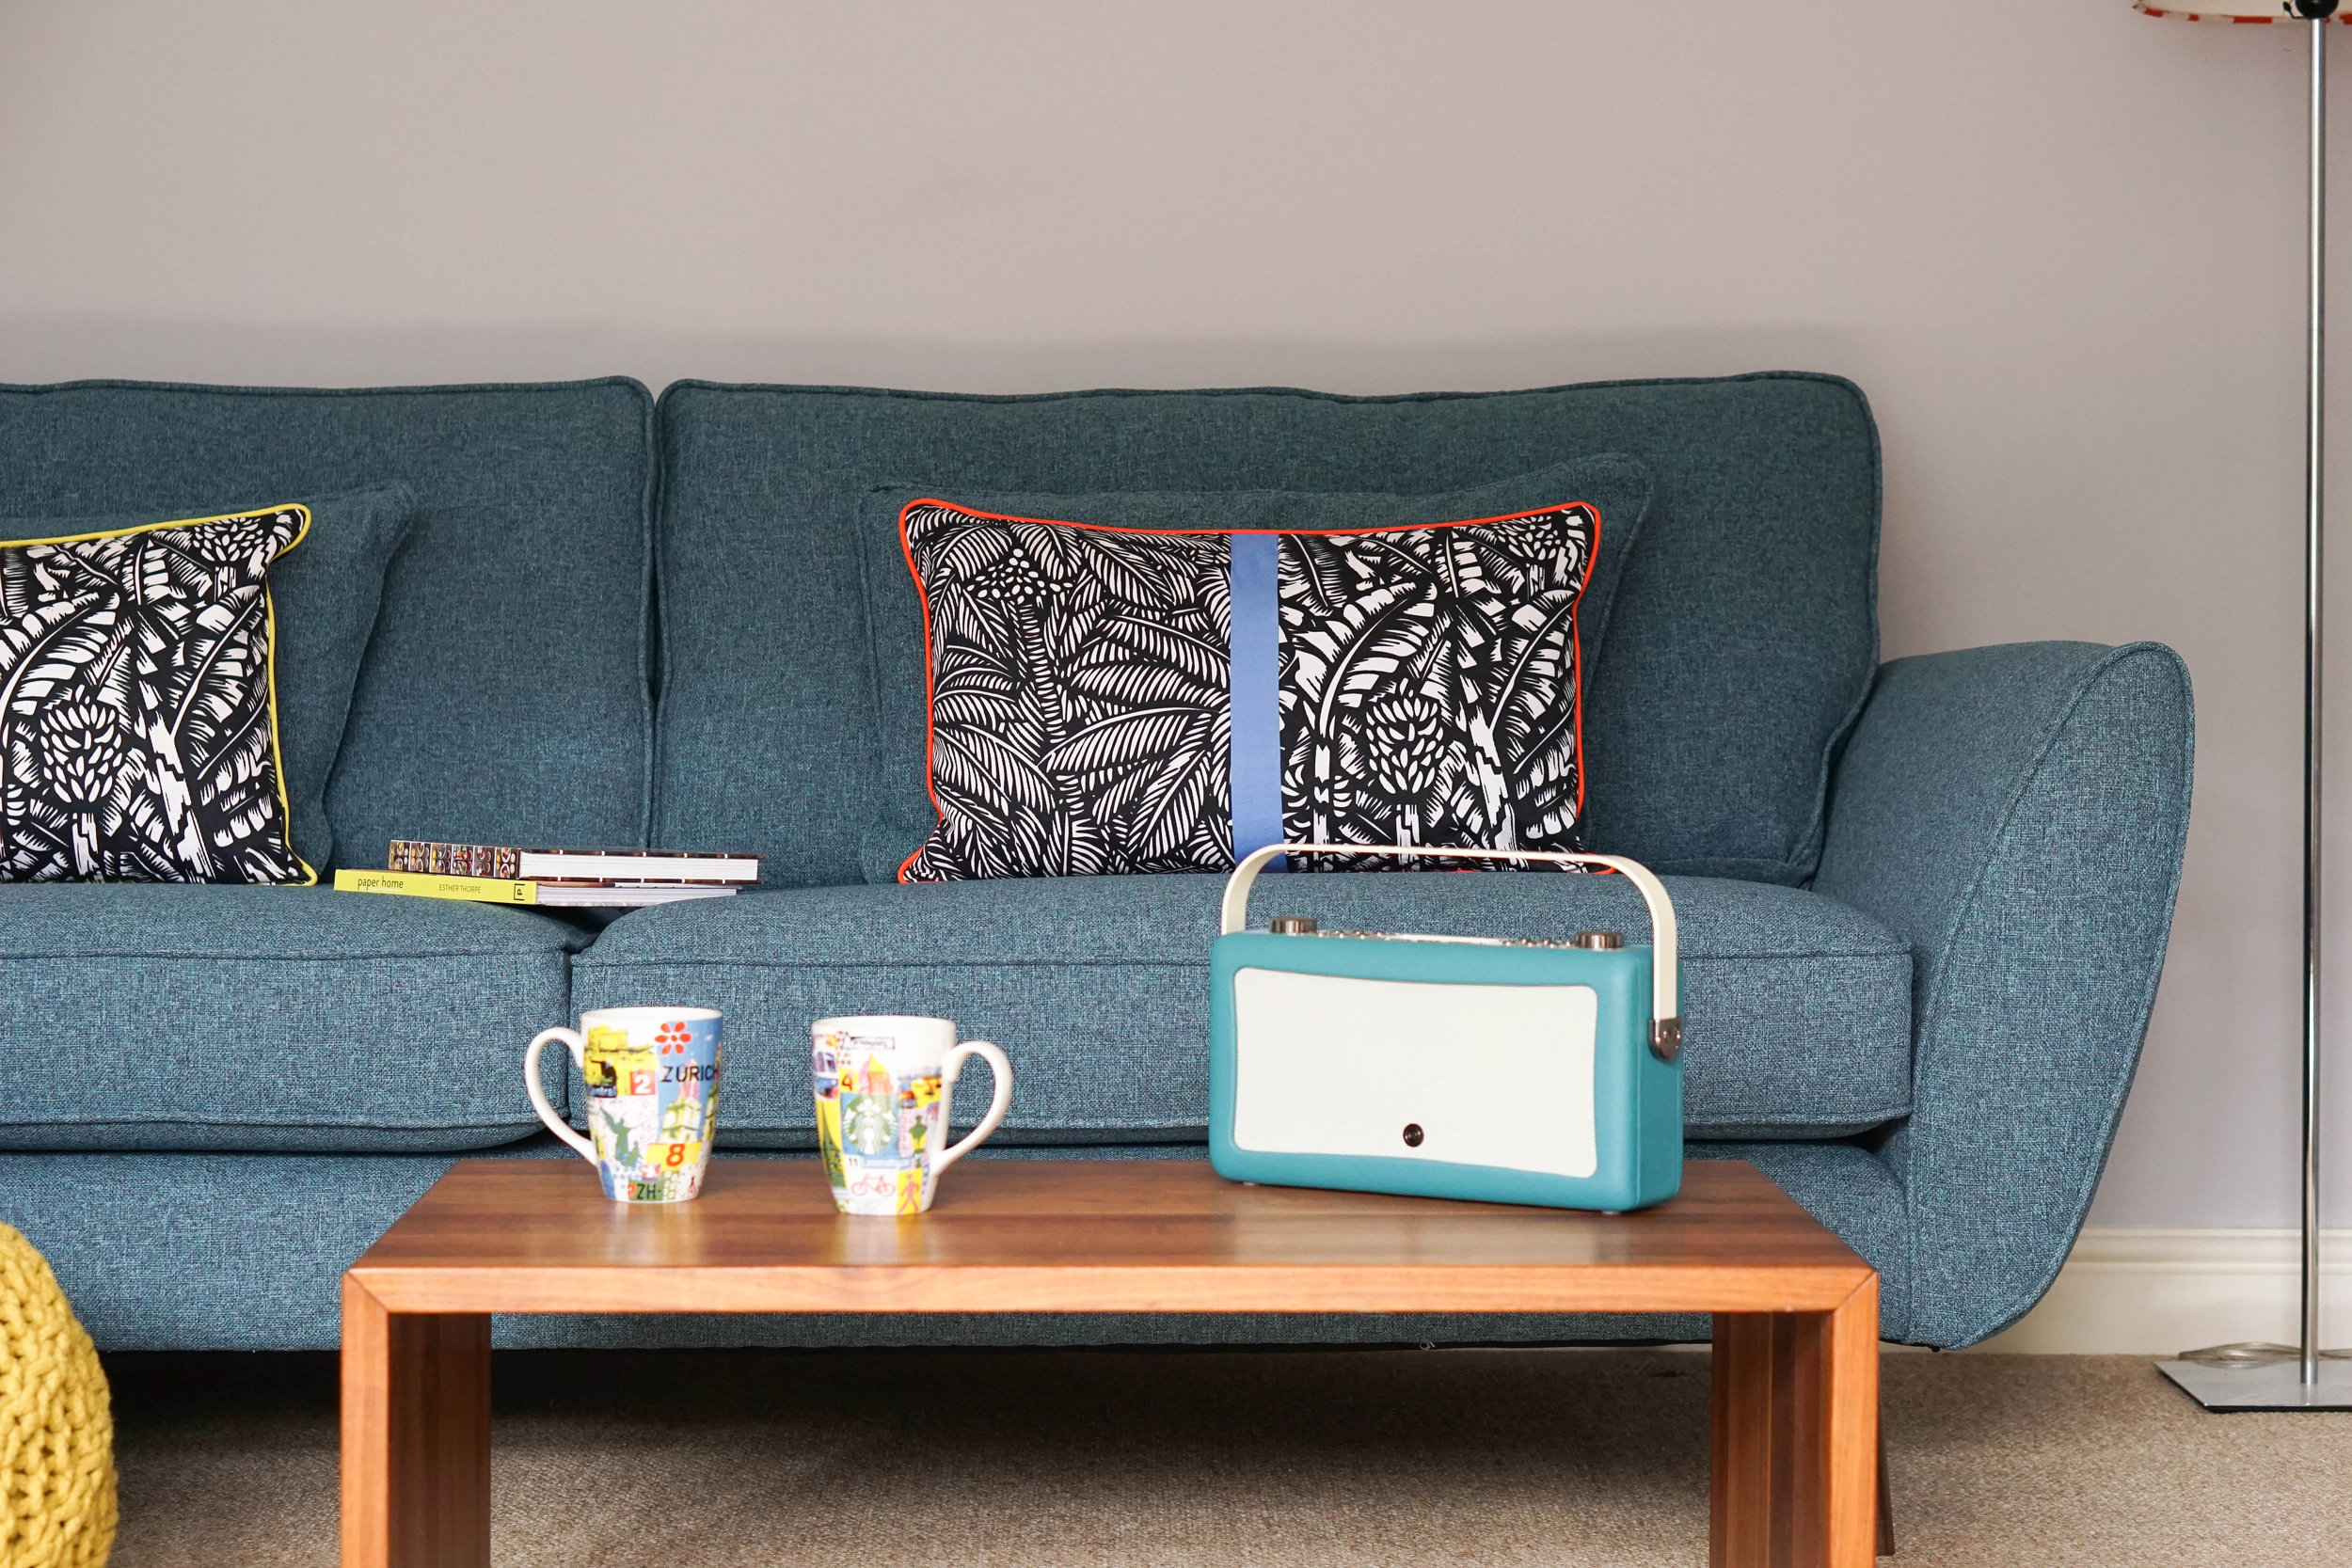 The Ordinary Lovely: A DFS sofa styling challenge #myDFS